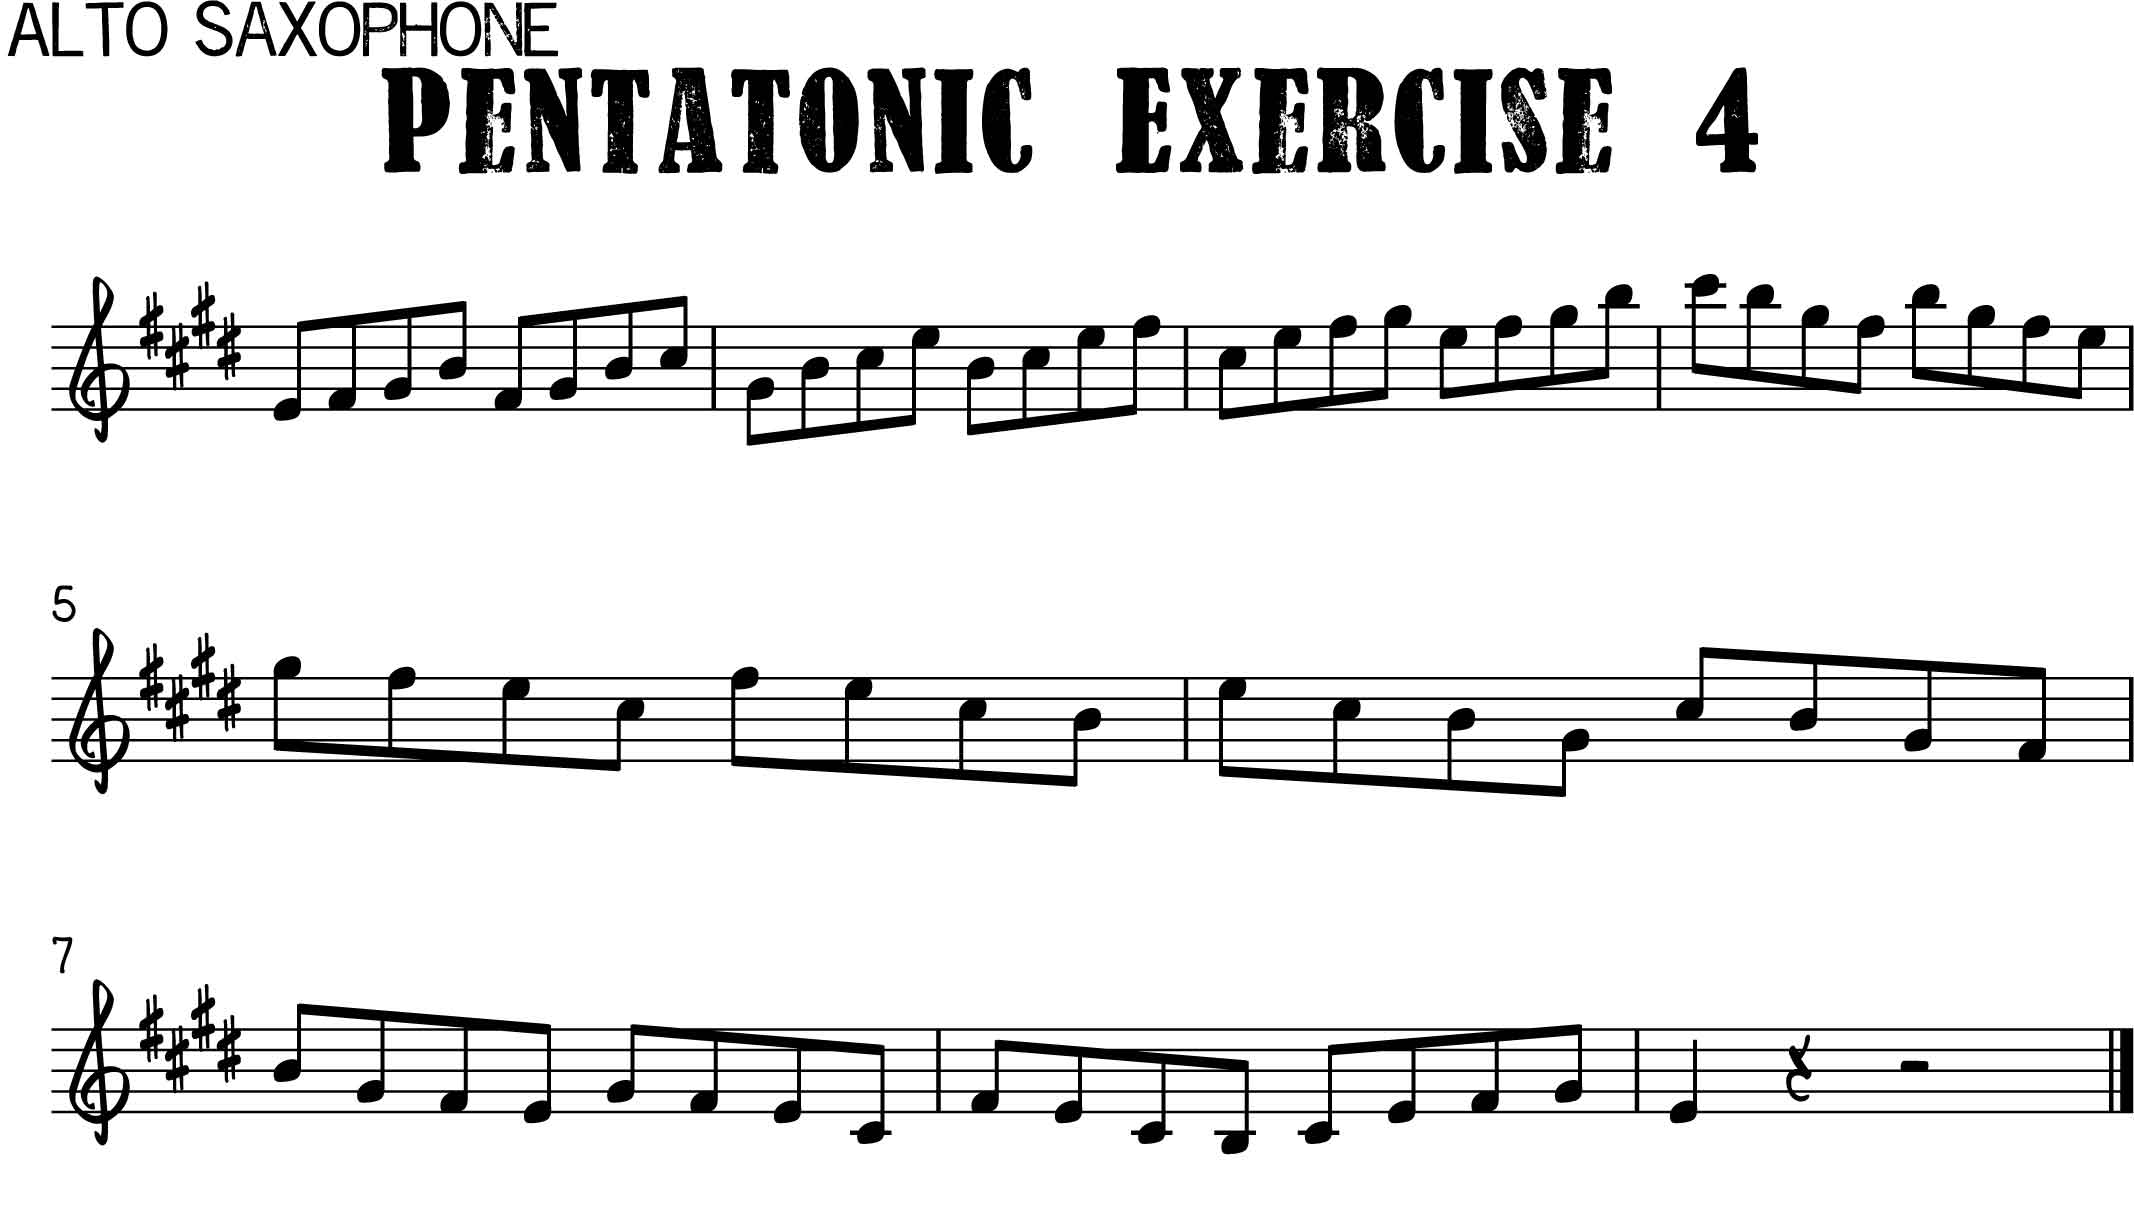 How to Play Stand By Me on Saxophone and Take a Solo – Better Sax